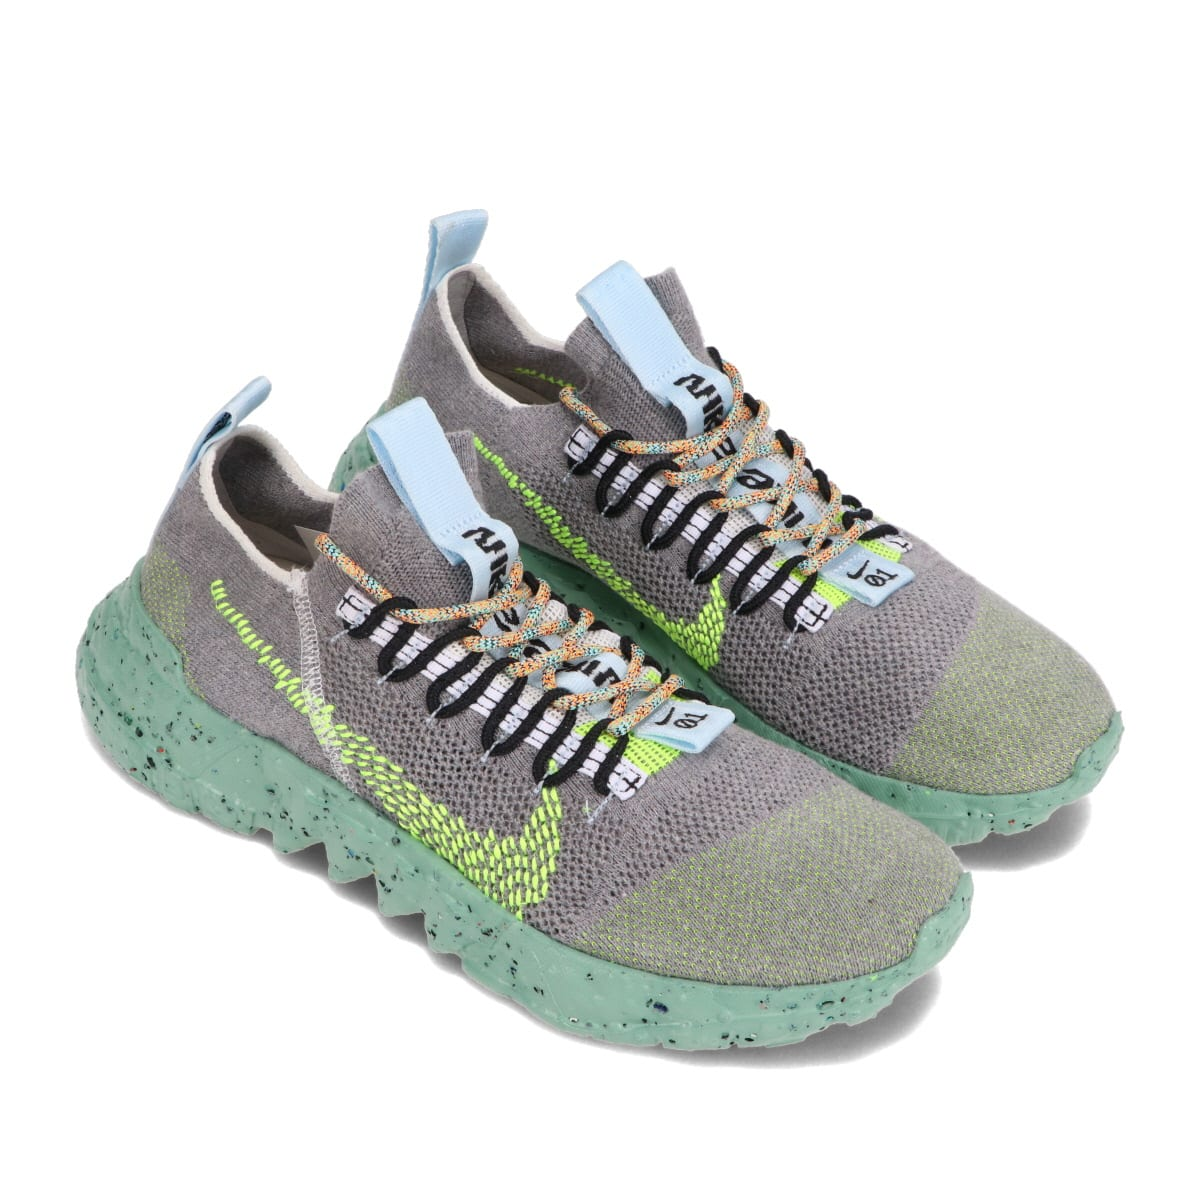 NIKE SPACE HIPPIE 01 WOLF GREY/VOLT-BLACK-WHITE 21SP-I_photo_large